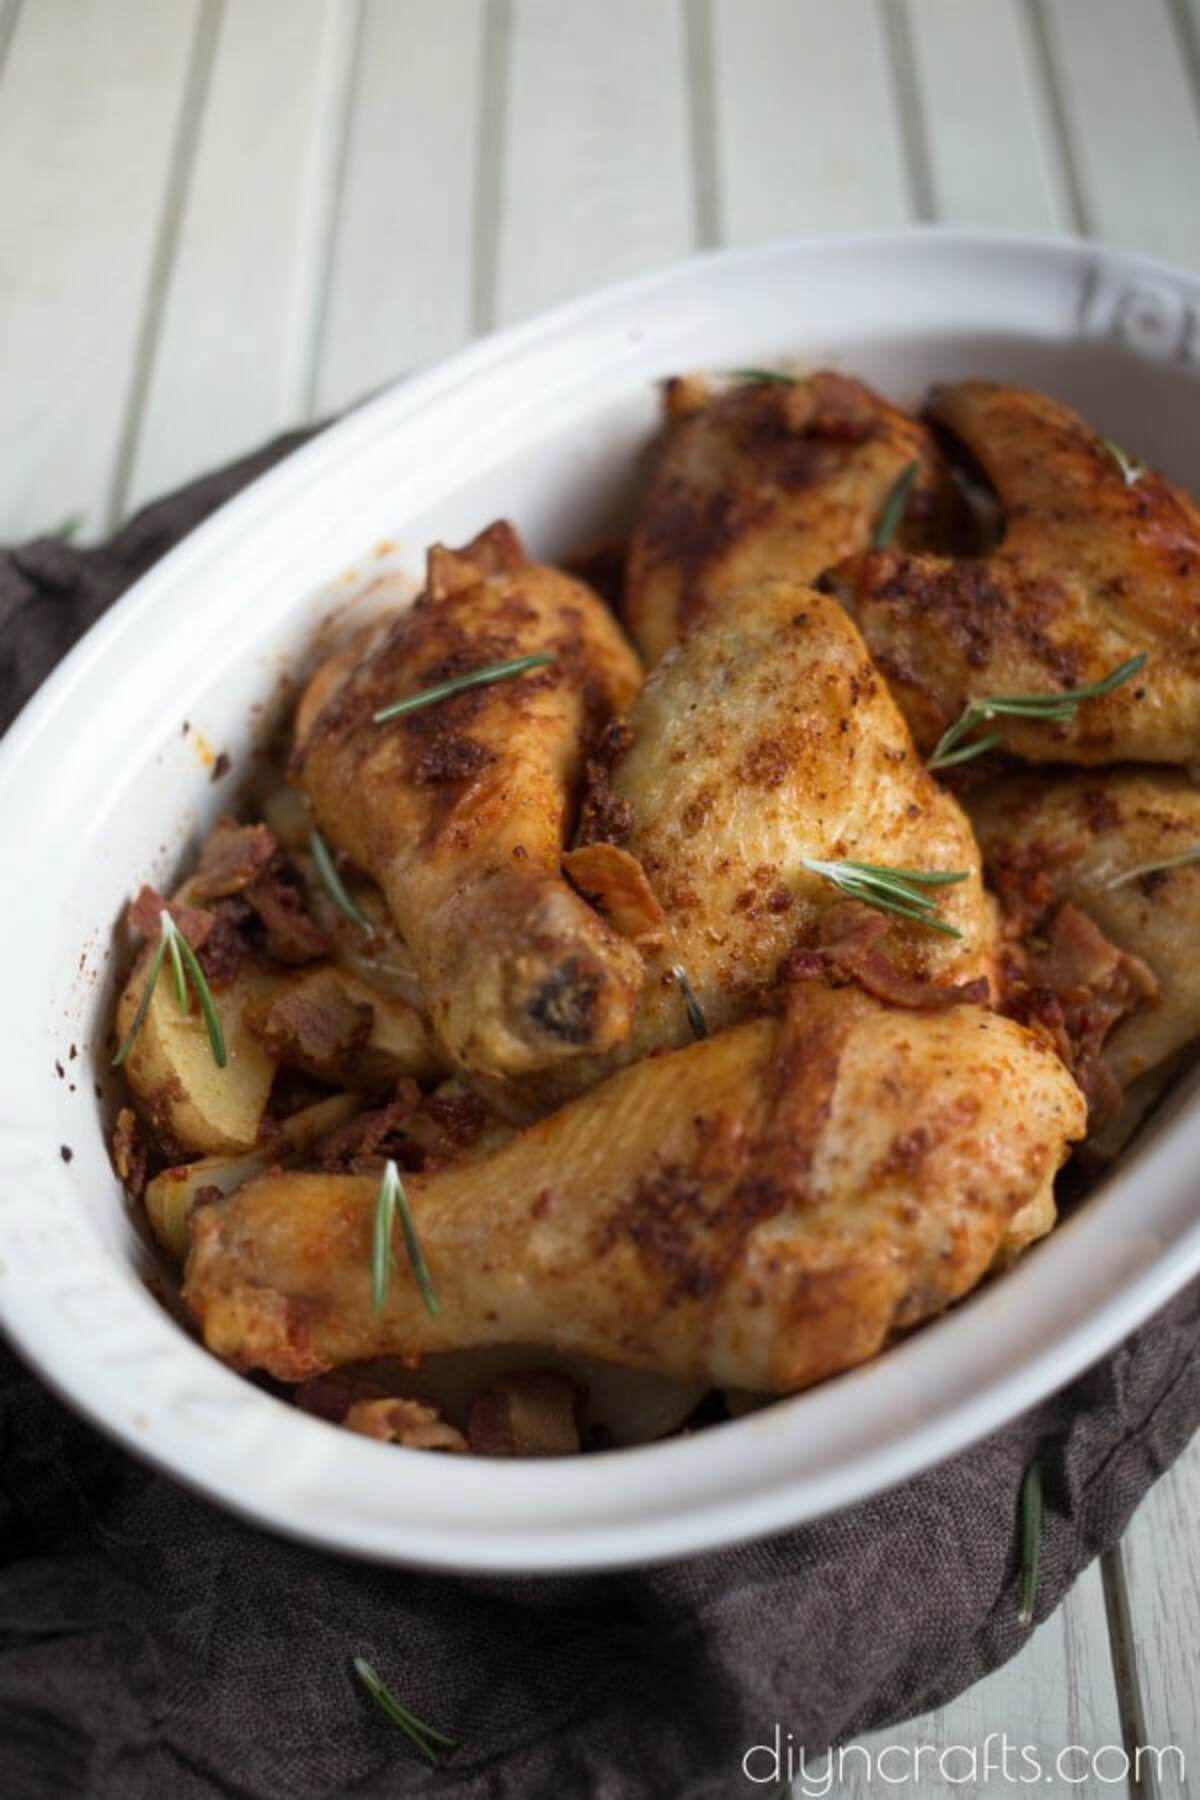 Baked chicken in oval baking dish